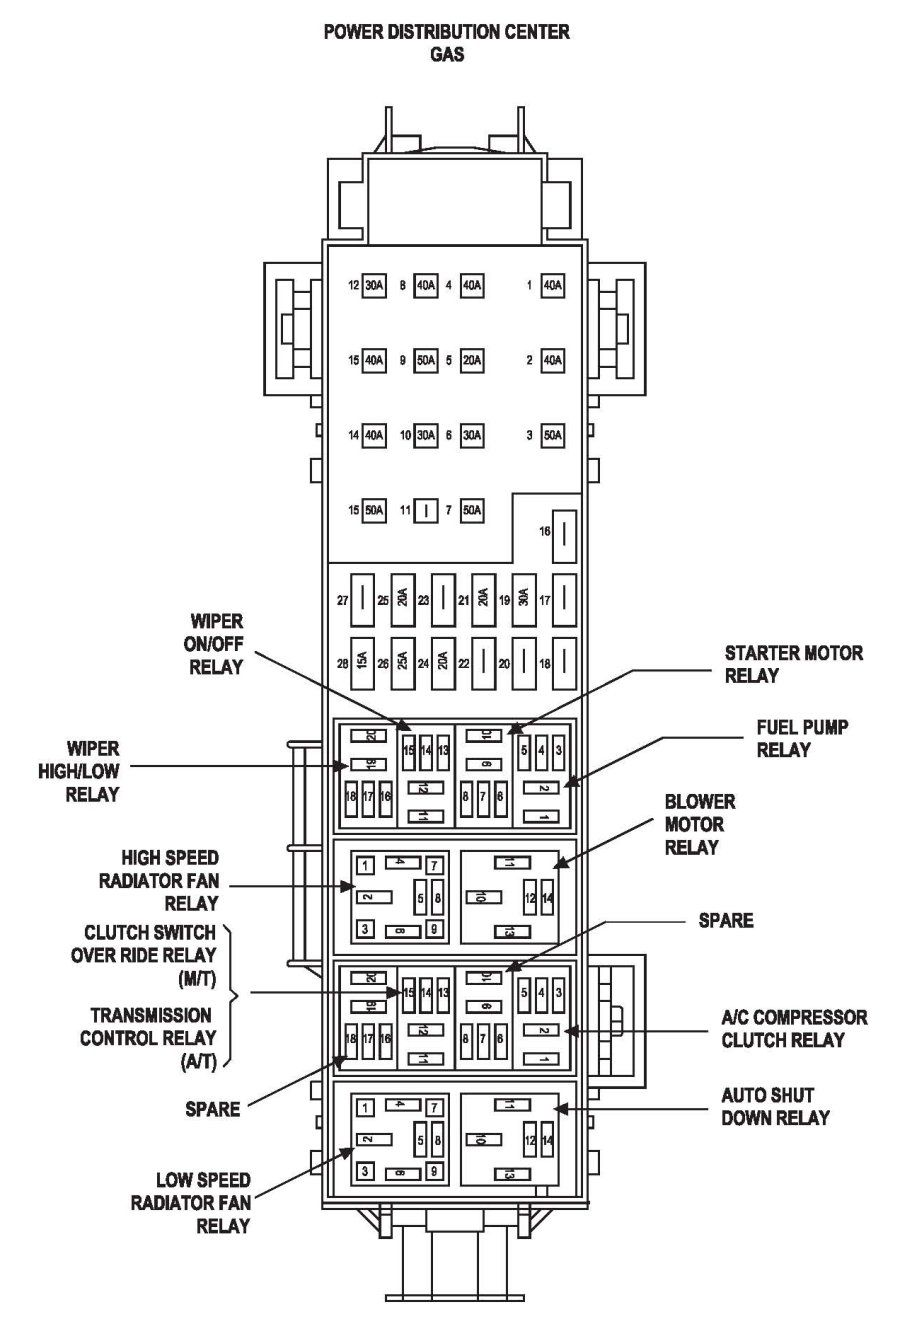 jeep liberty fuse box diagram image details jeep liberty fuse panel diagram 2008 hino 2010 jeep liberty fuse box diagram [ 900 x 1336 Pixel ]